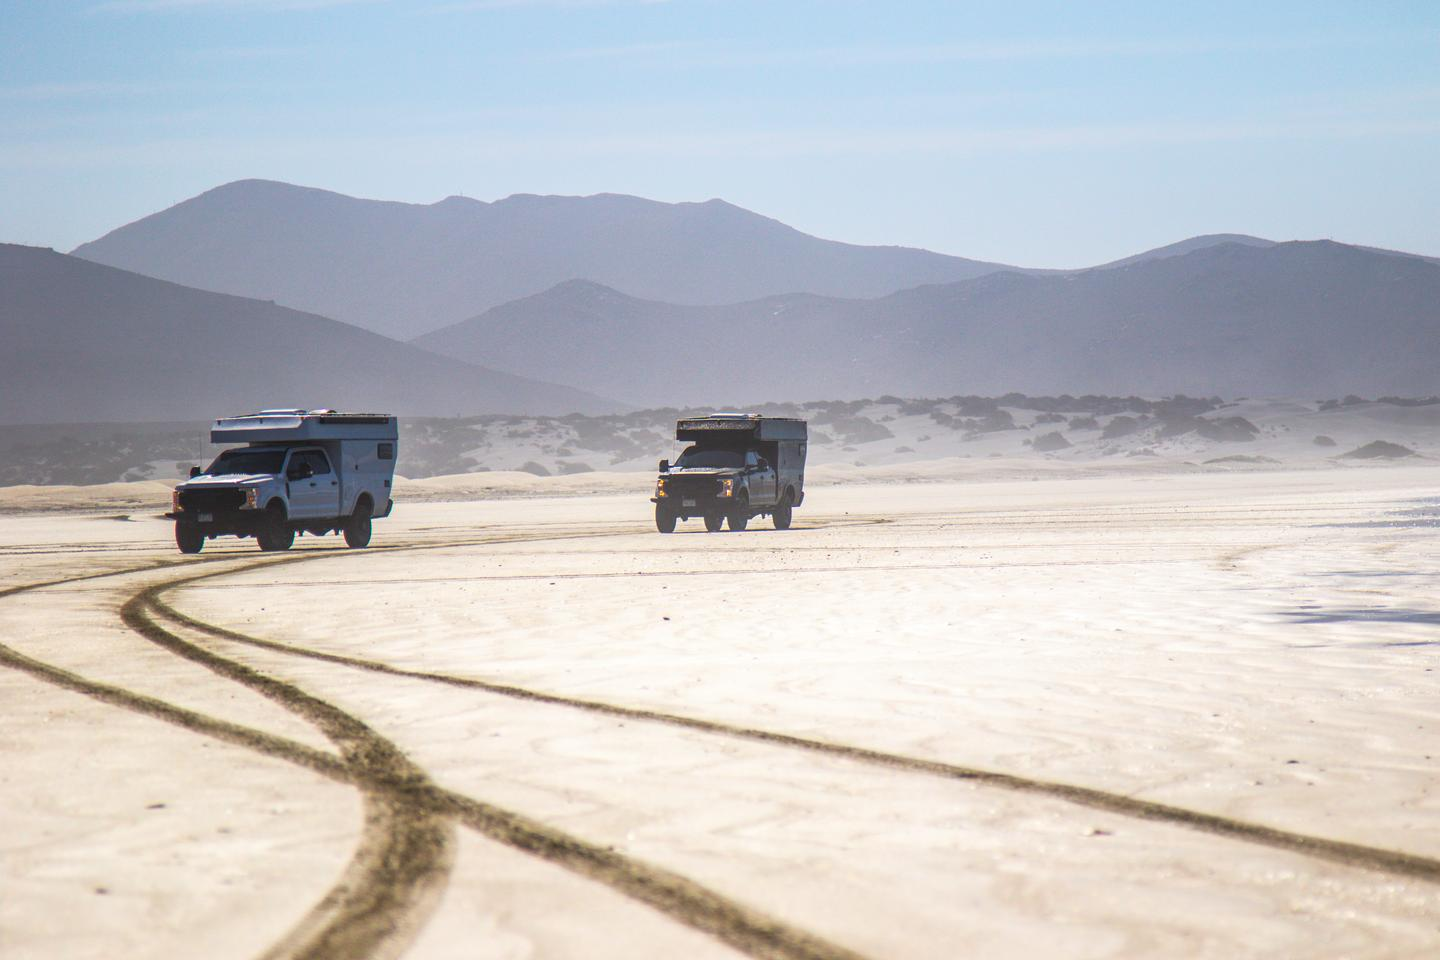 Two Rossmönster Baja trucks make their own vacation